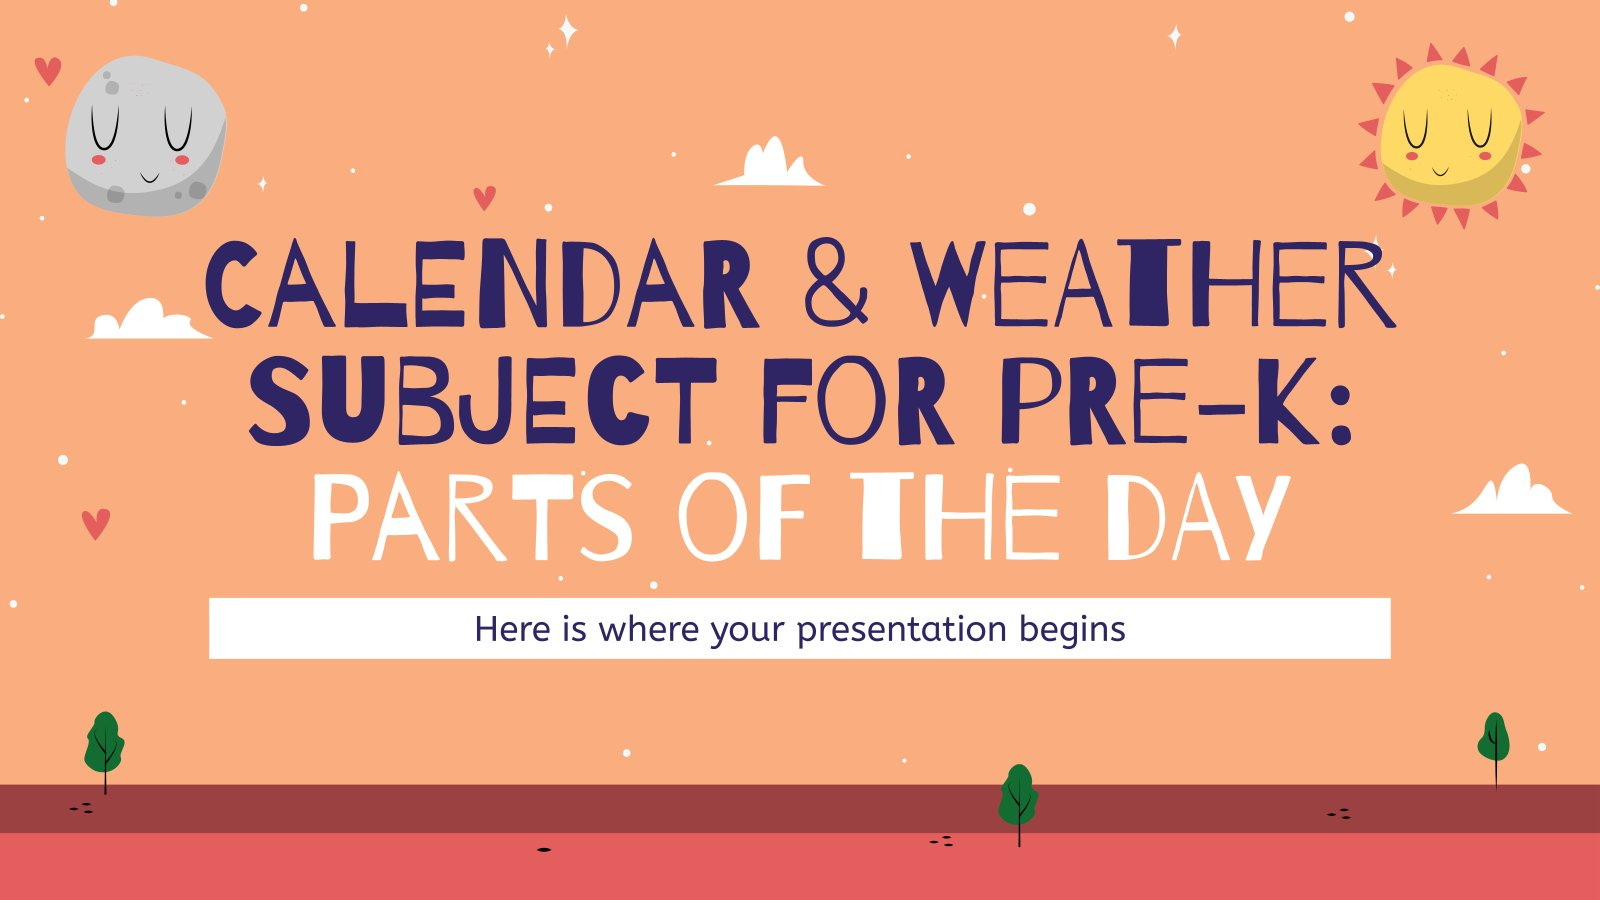 Calendar & Weather Subject for Pre-K: Parts of the Day presentation template